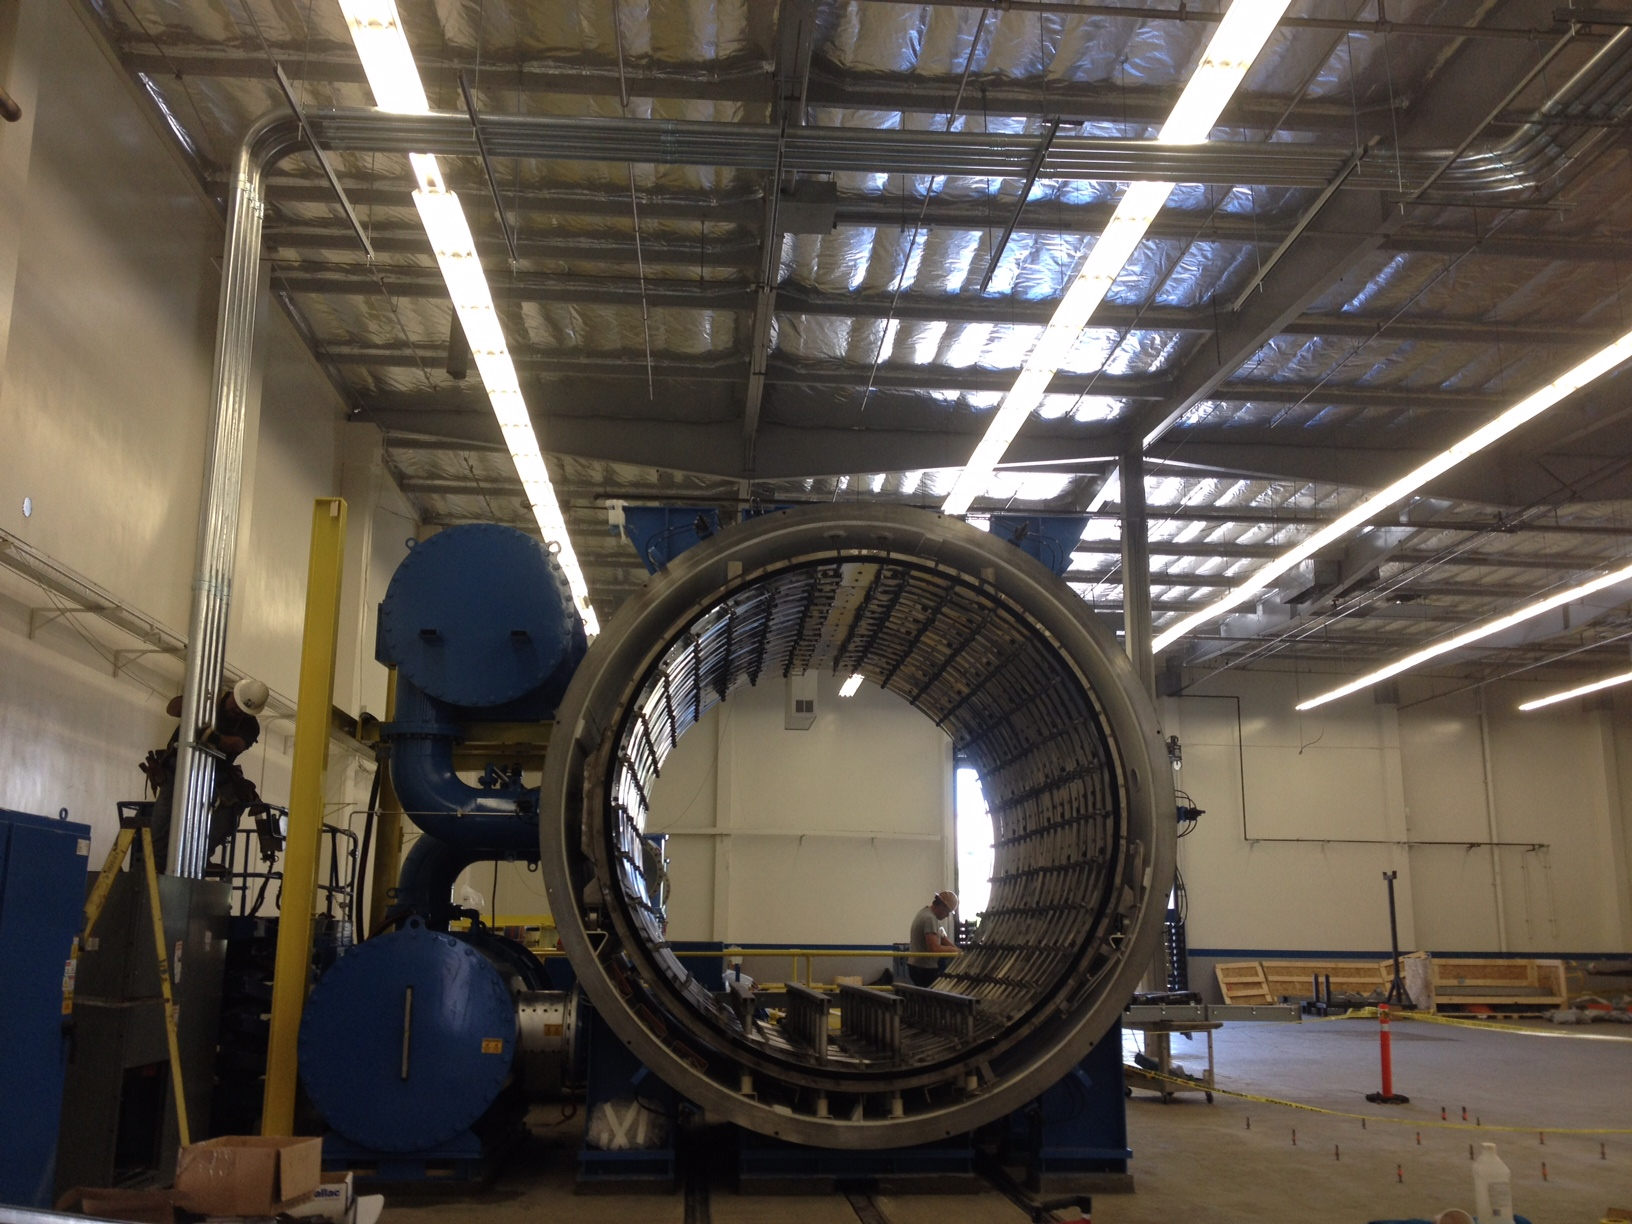 Industrial Machinery Wiring & Conduit - Fullerton Electric Co.